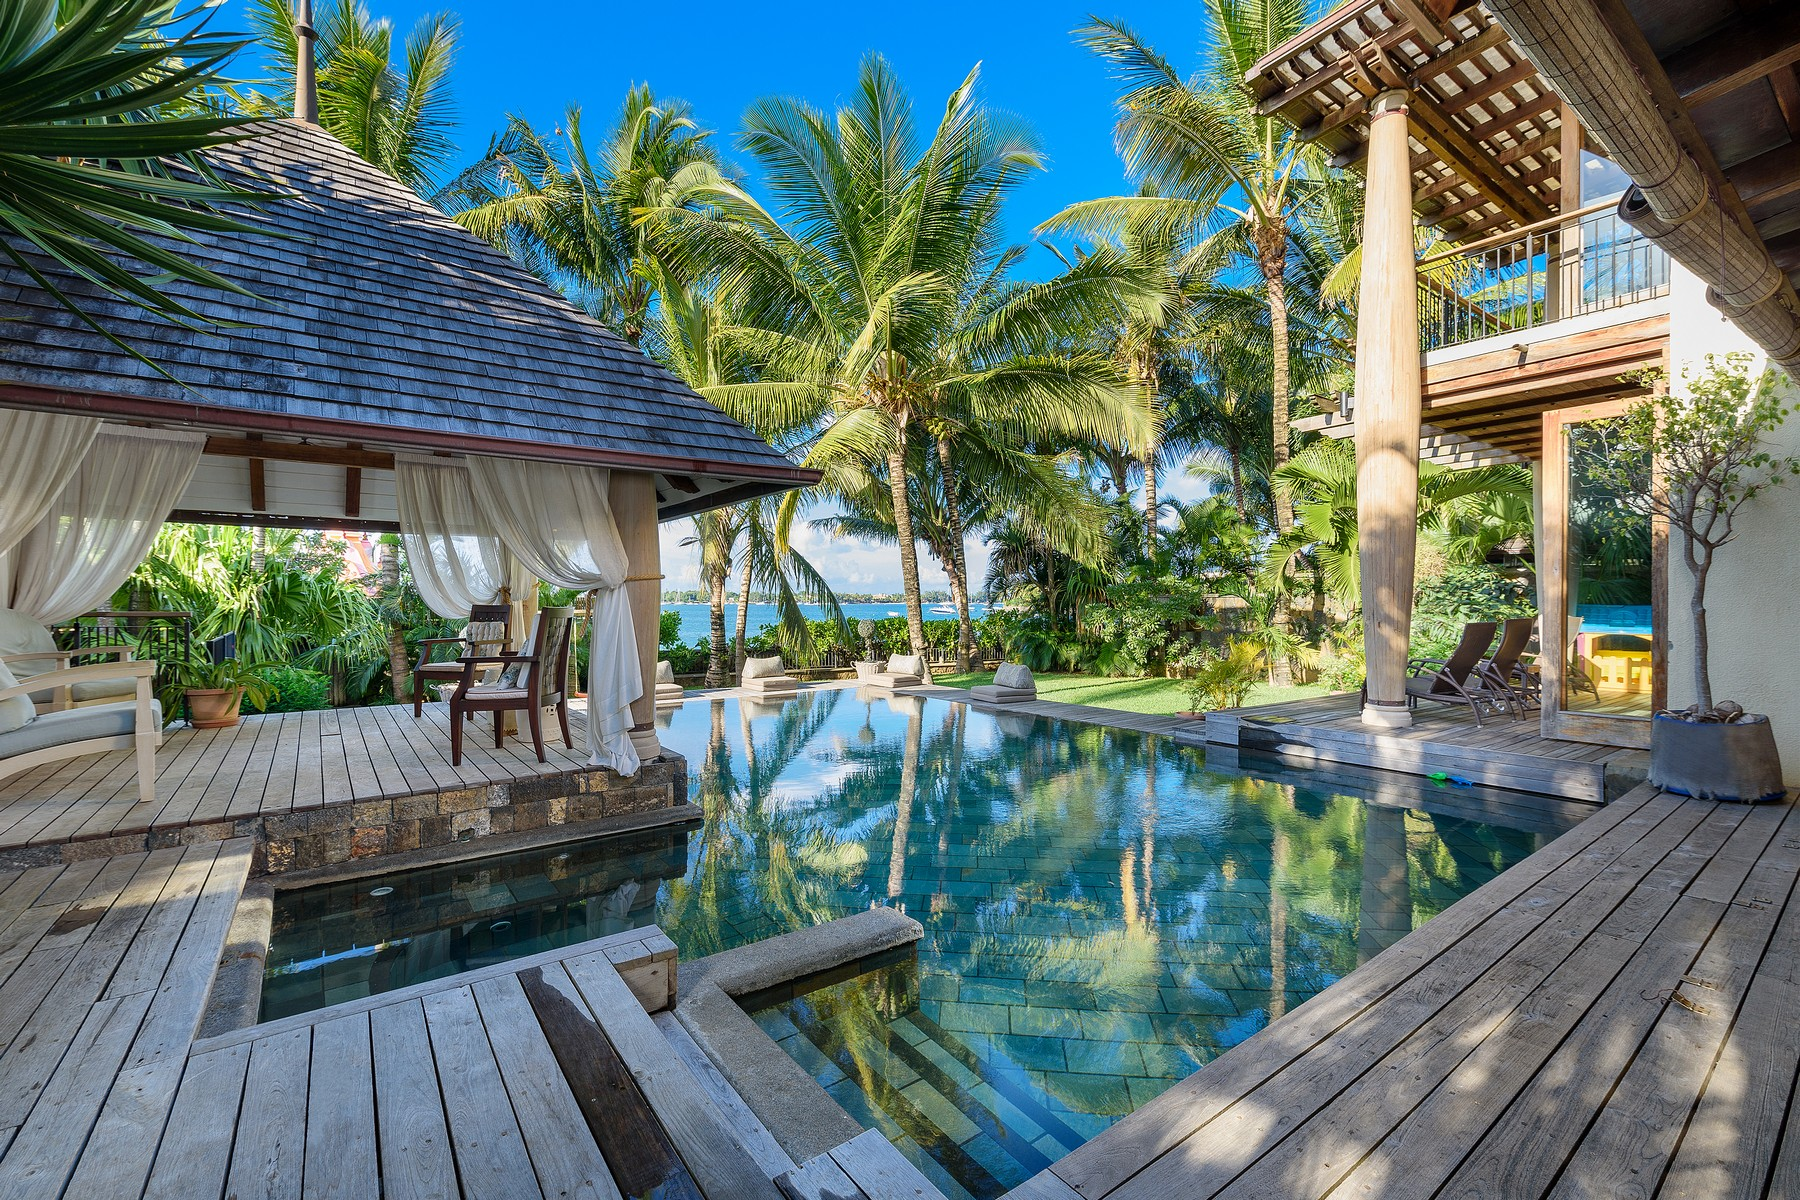 Single Family Home for Sale at Casa Coin de Mire Grand Baie, Riviere Du Rempart Mauritius